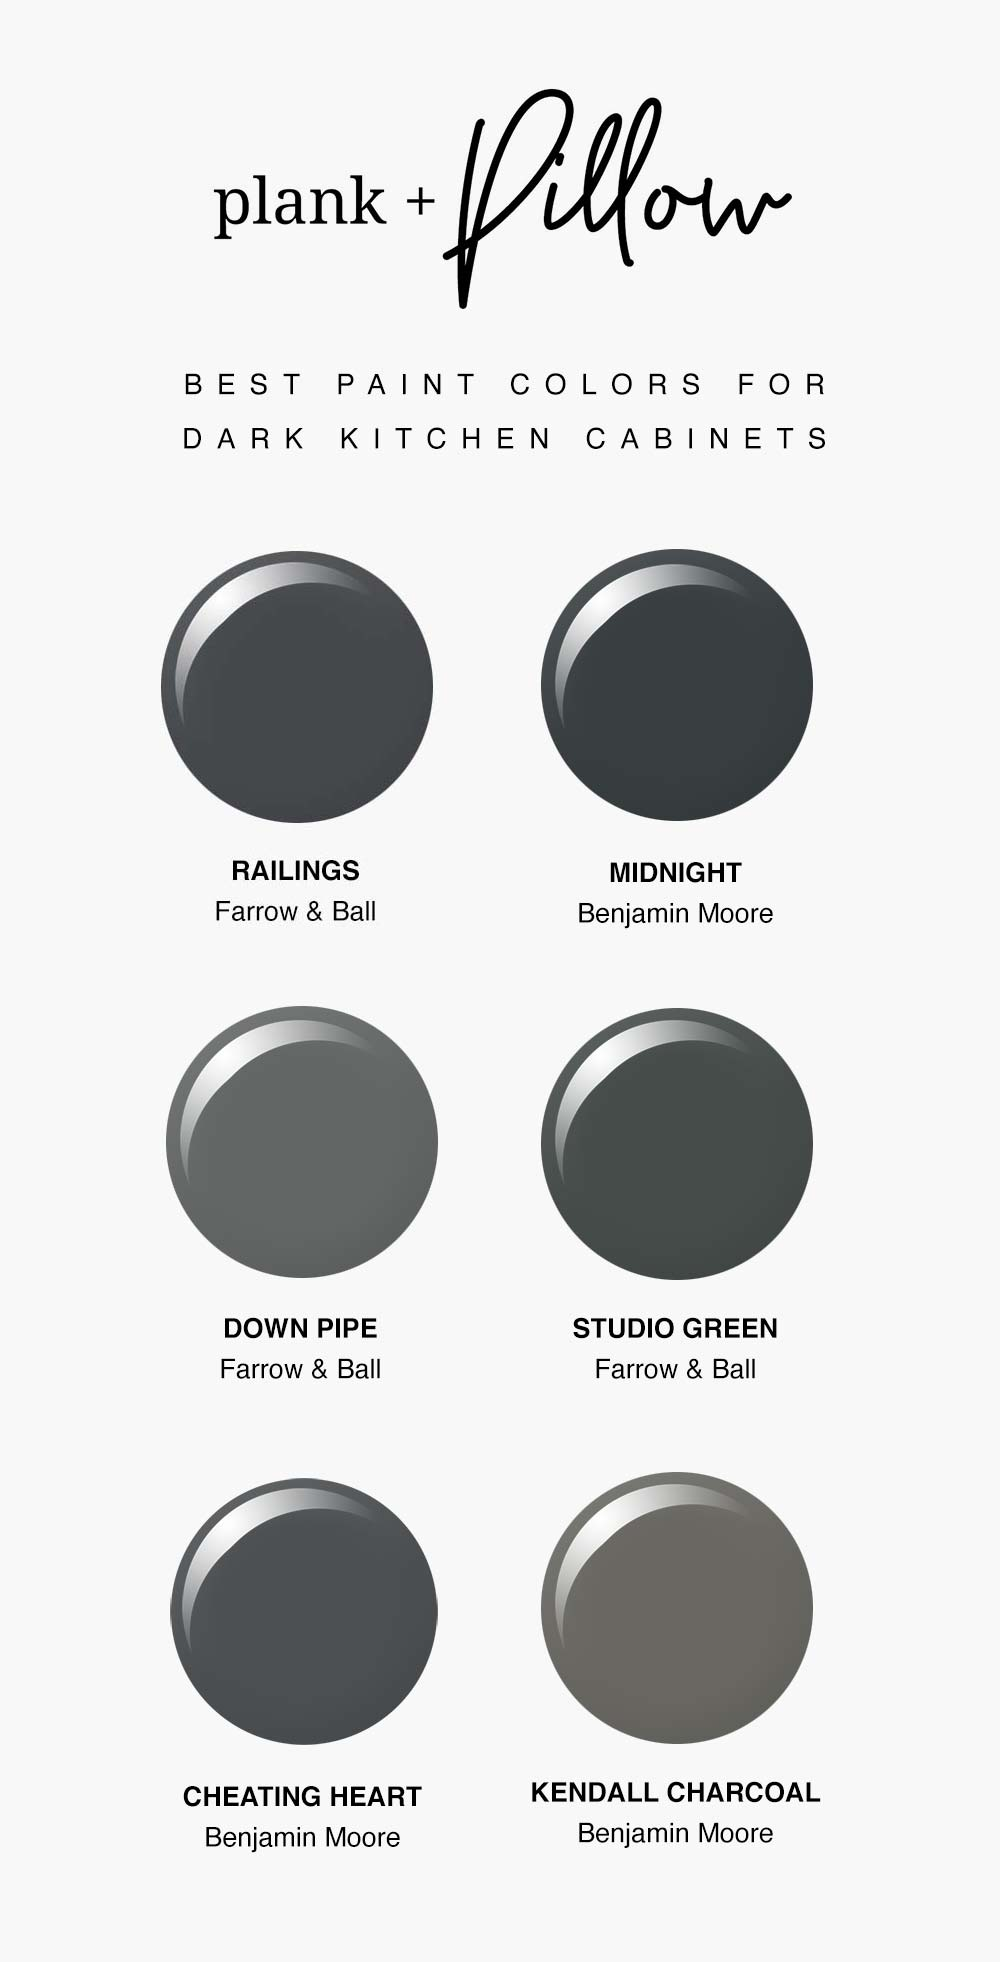 Charcoal Paint Color : charcoal, paint, color, Paint, Colors, Kitchen, Cabinets, Plank, Pillow